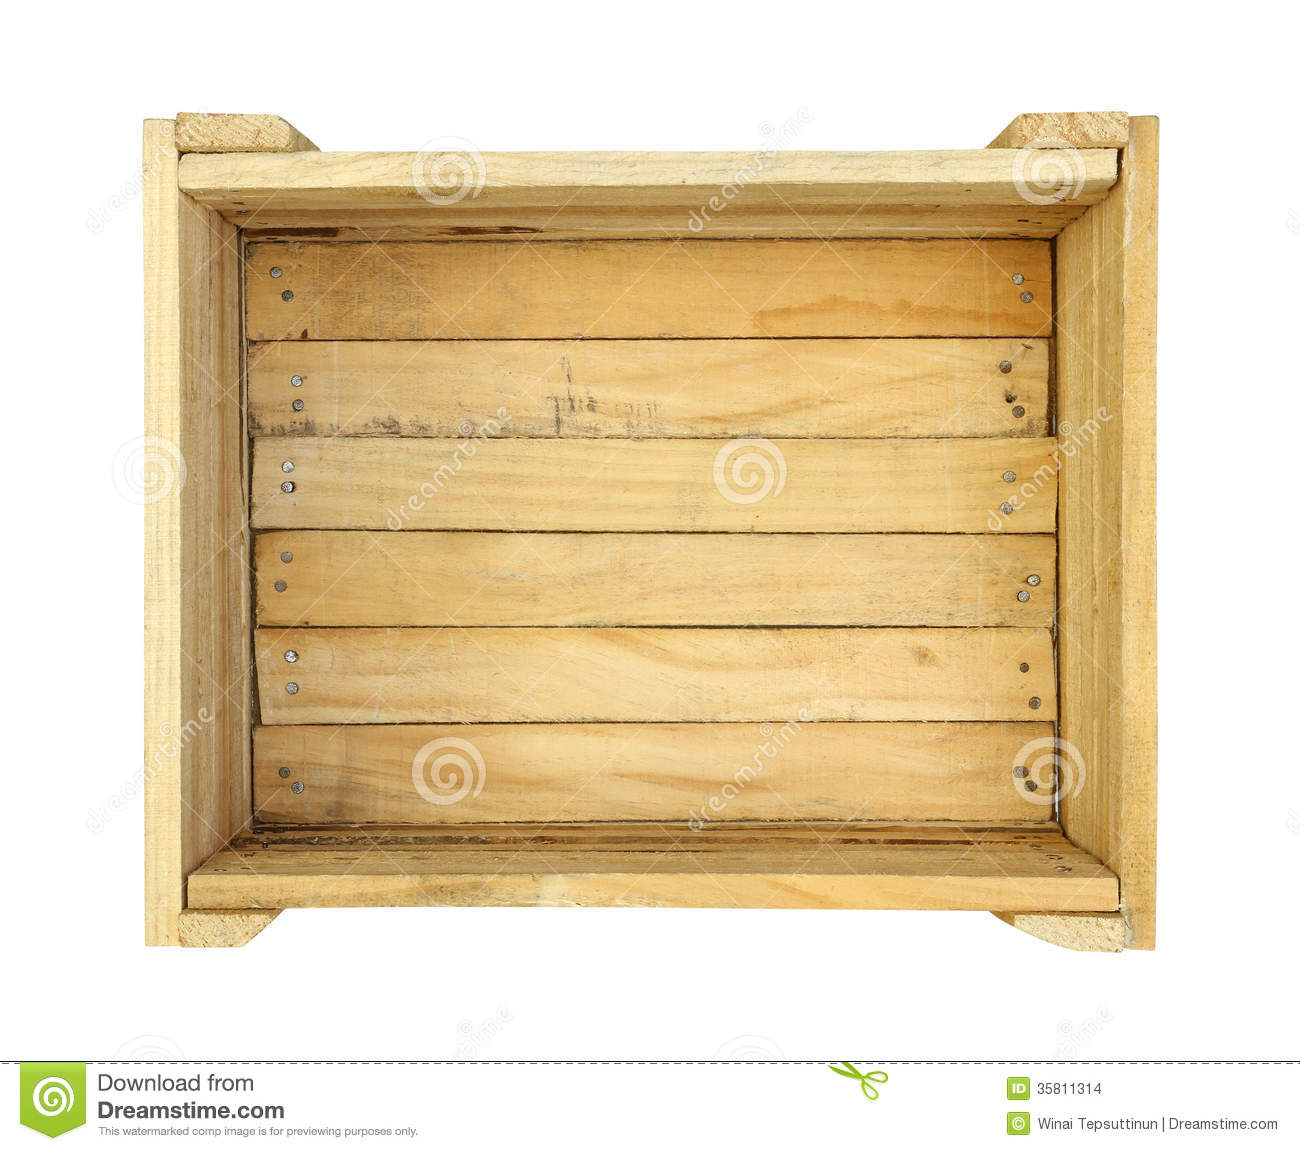 Wooden box (with clipping path) isolated on white background.